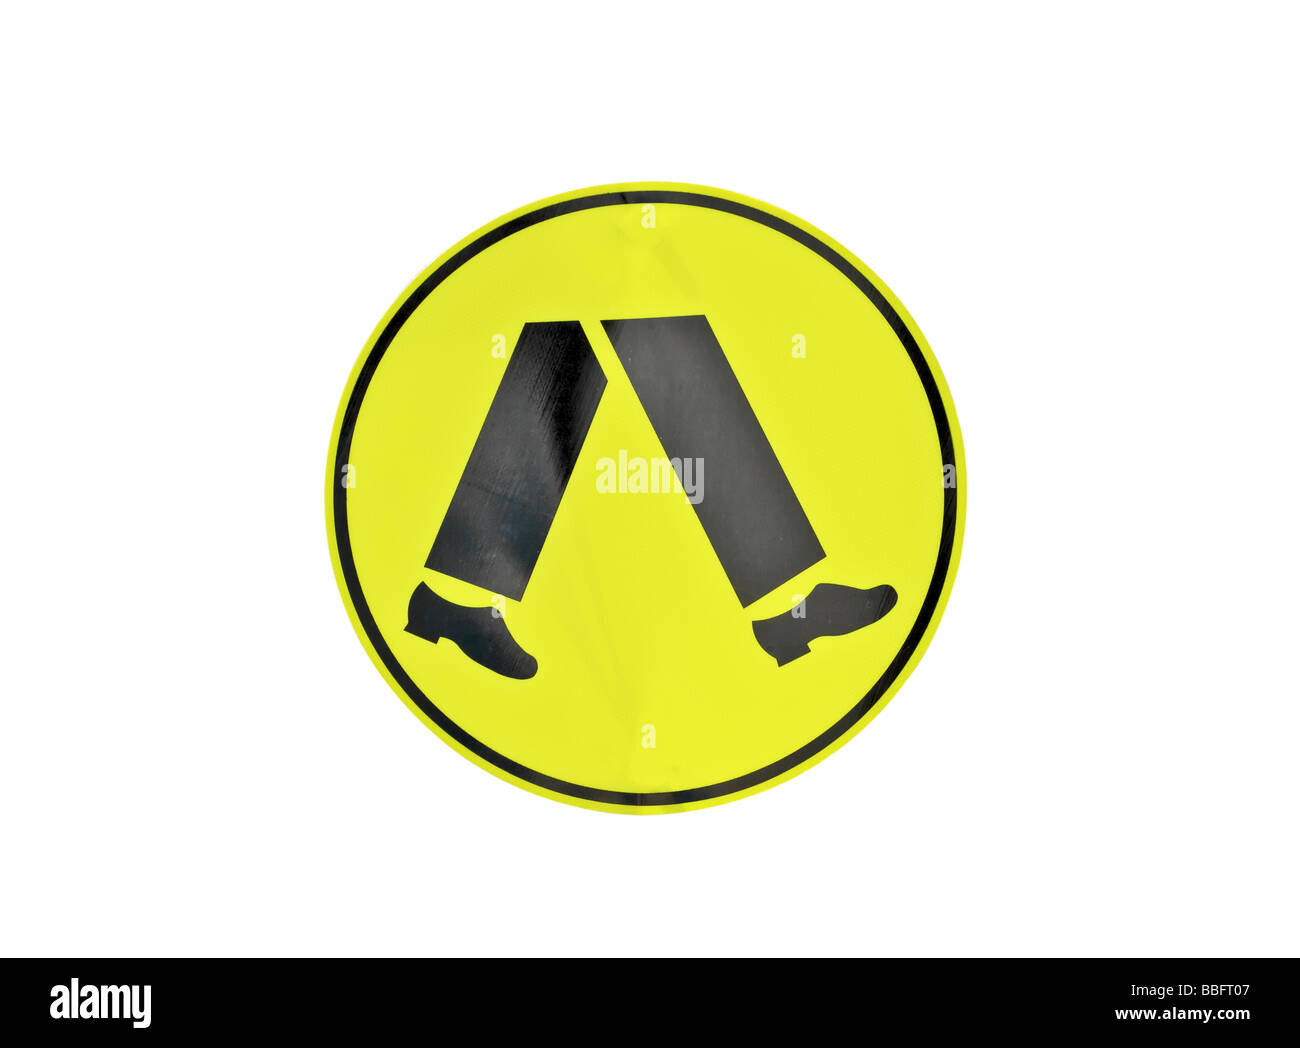 Street or road sign detailing a pedestrian crossing - Stock Image